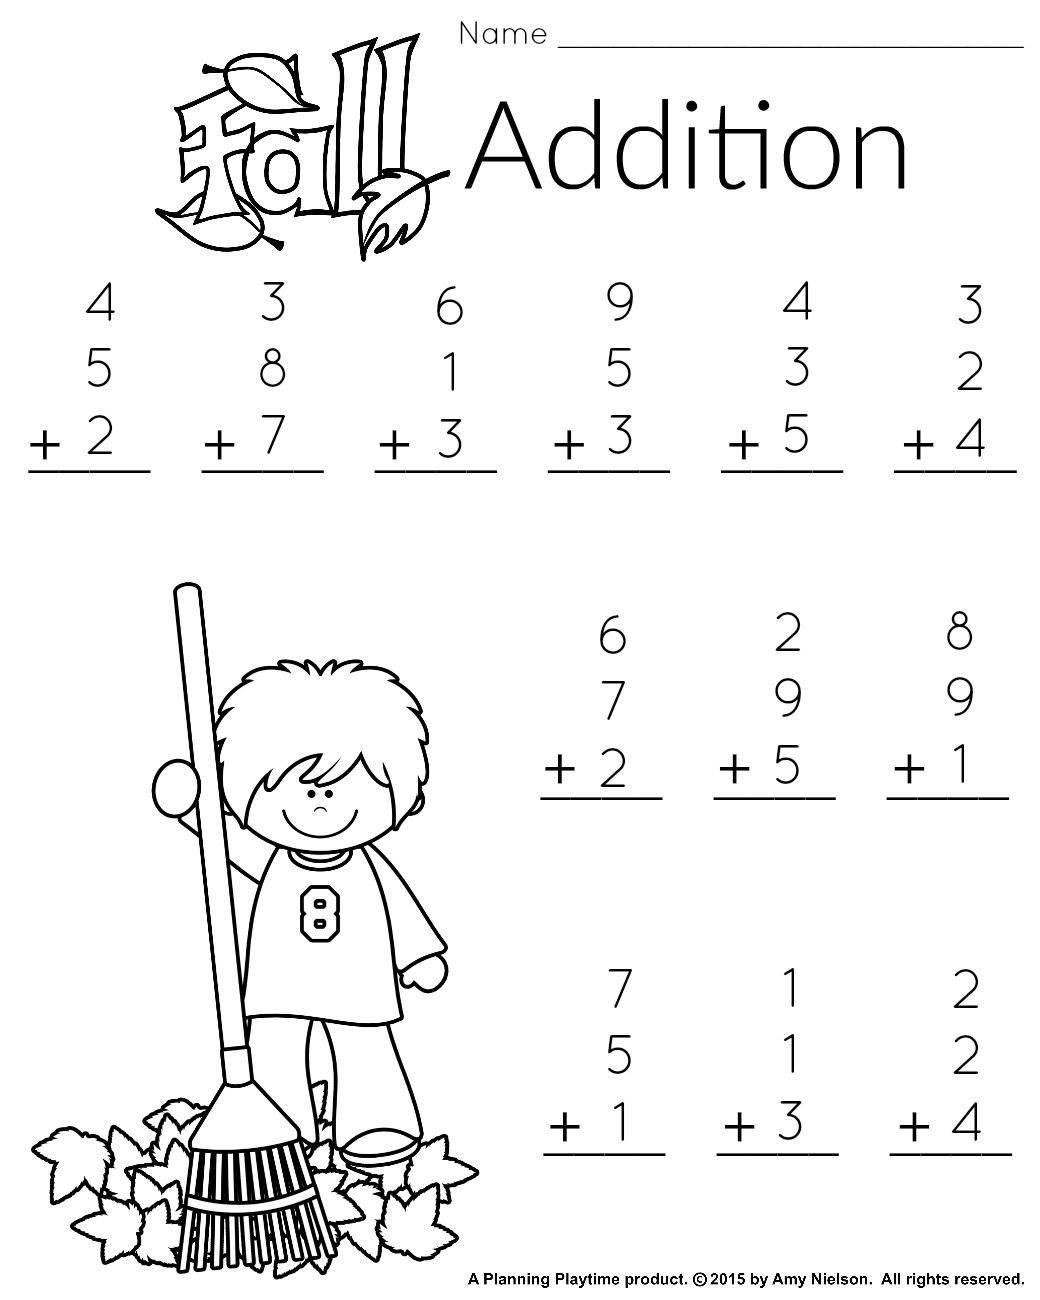 Addition Worksheets for 1st Grade 1st Grade Math and Literacy Worksheets with A Freebie